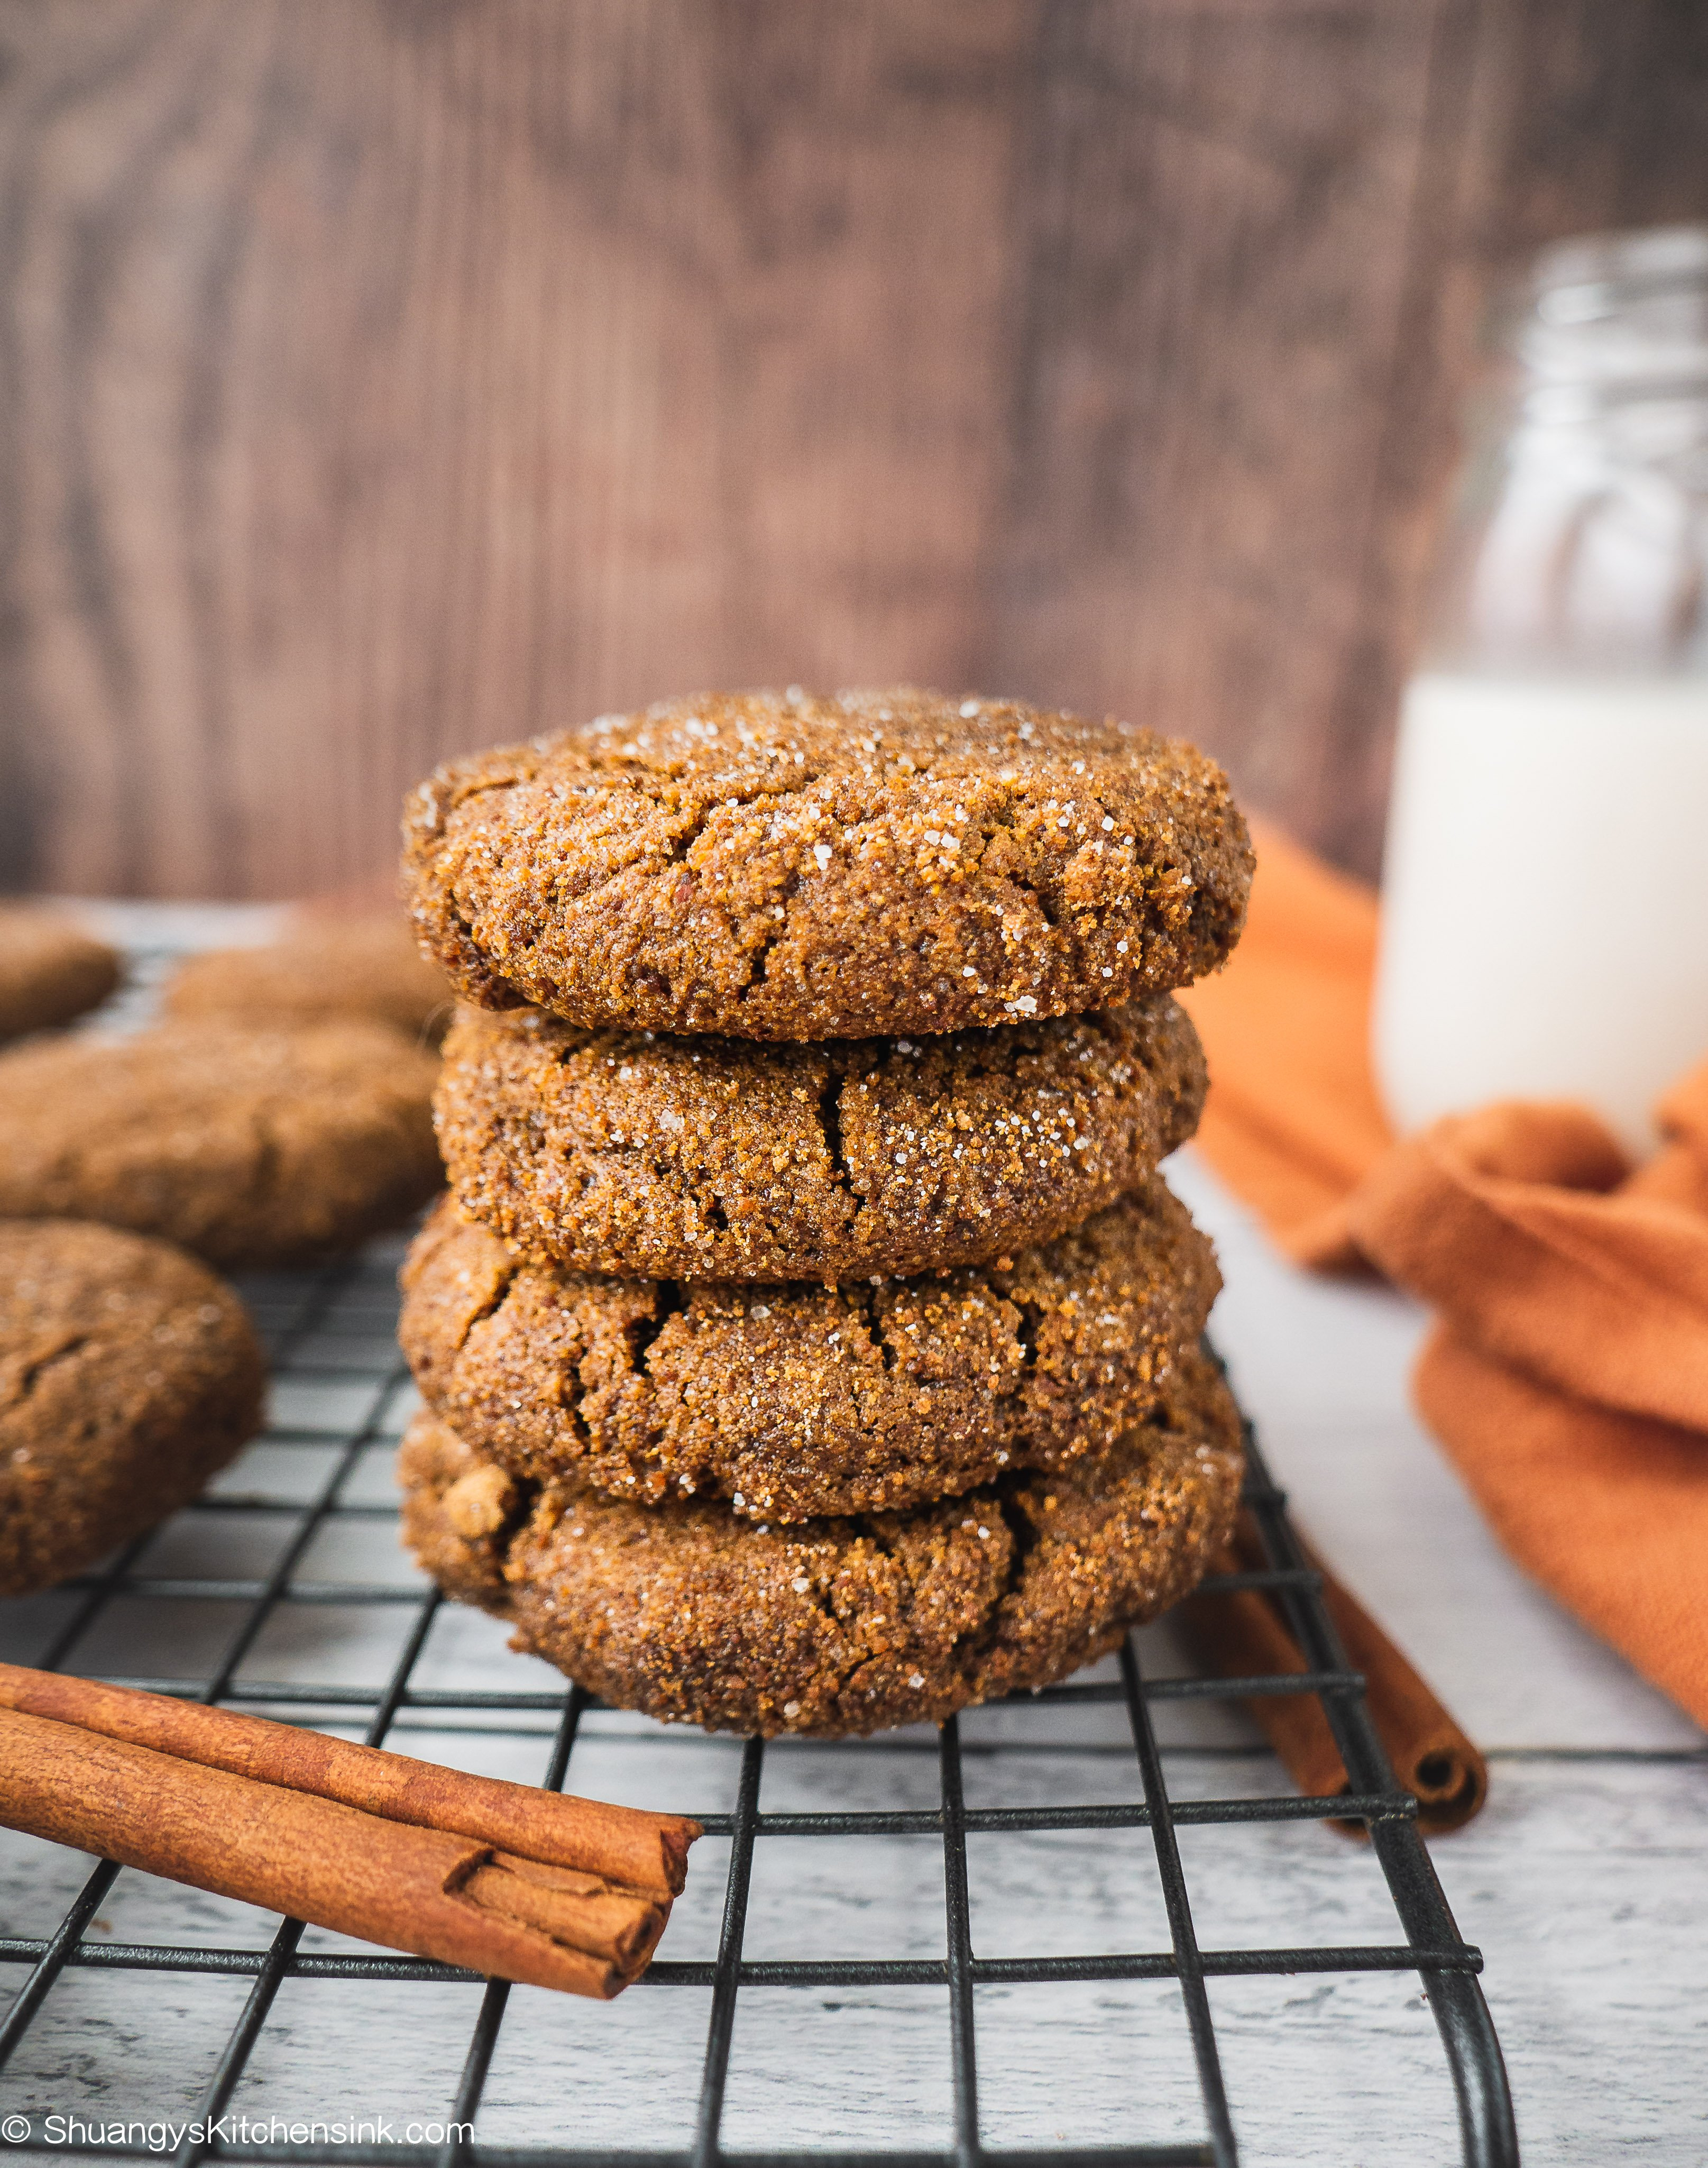 A stack of paleo ginger bread cookies with a glass of milk and cinnamon sticks in the background.